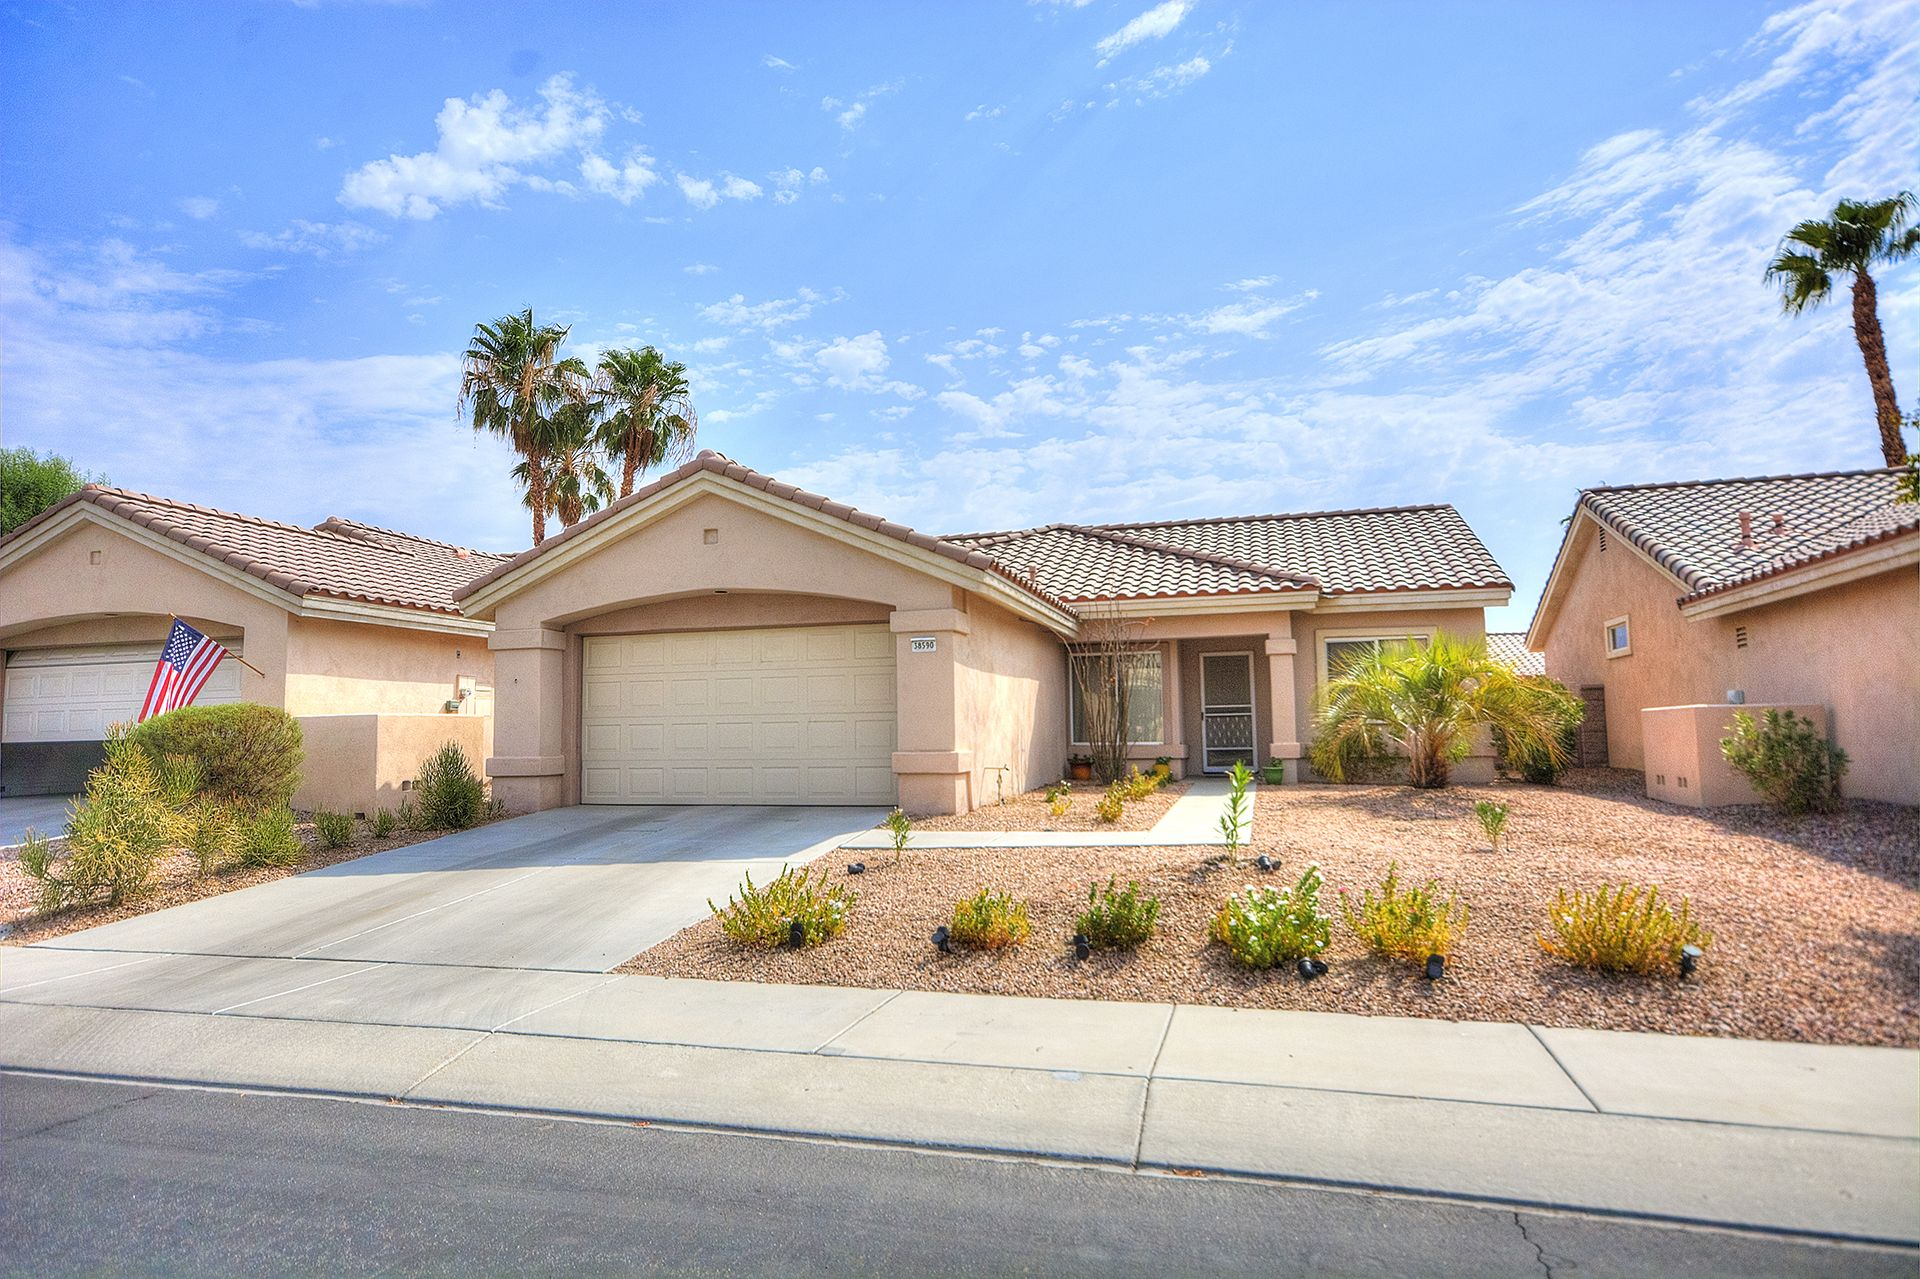 SUN CITY PALM DESERT Charming home with 2 bedrooms, 2